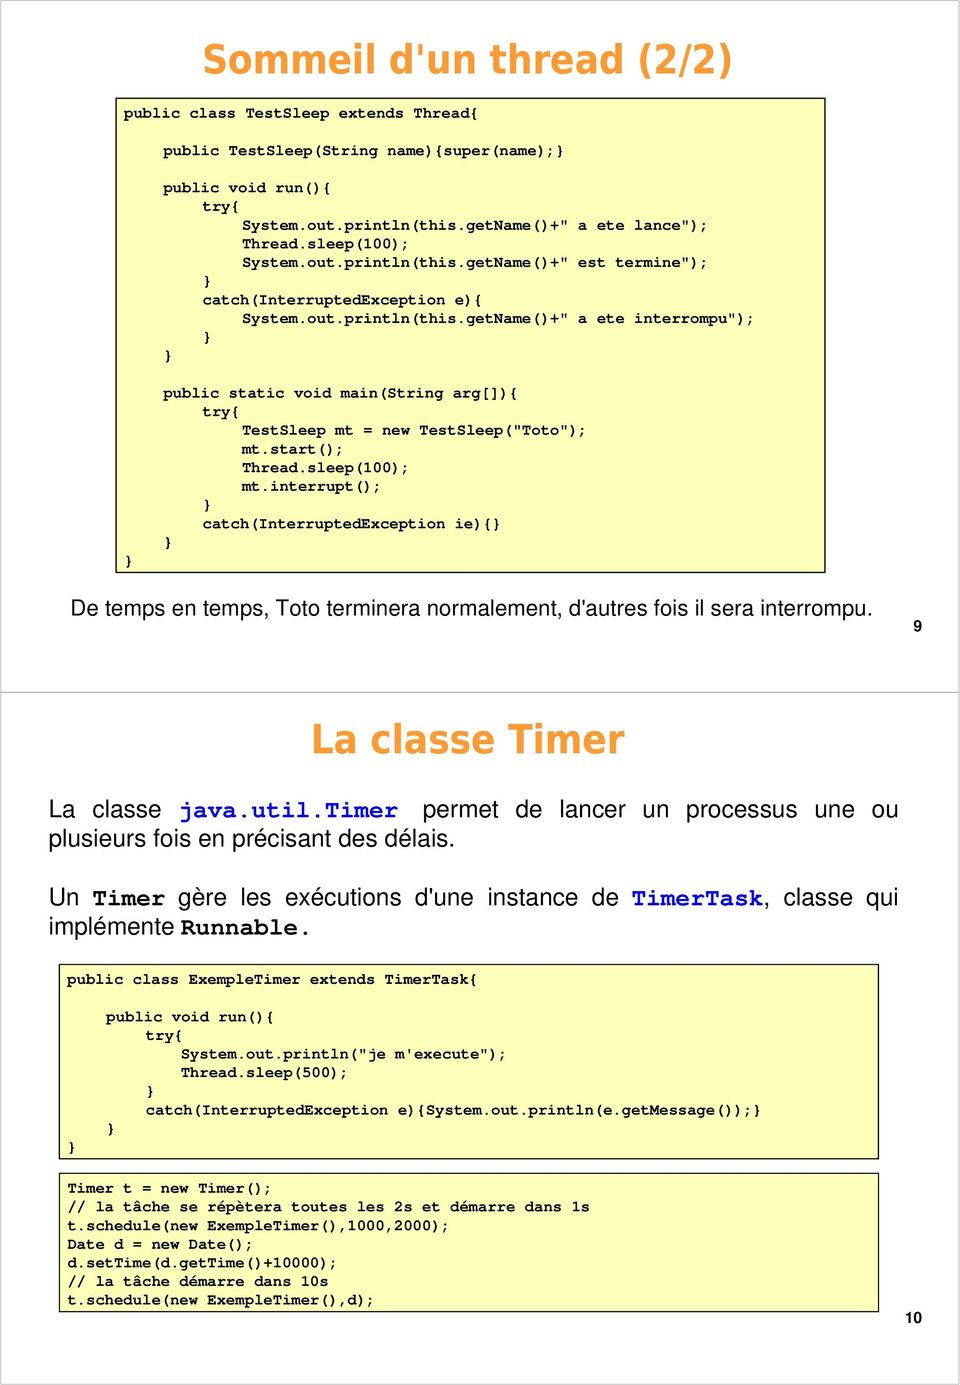 interrupt(); catch(interruptedexception ie){ De temps en temps, Toto terminera normalement, d'autres fois il sera interrompu. 9 La classe Timer La classe java.util.